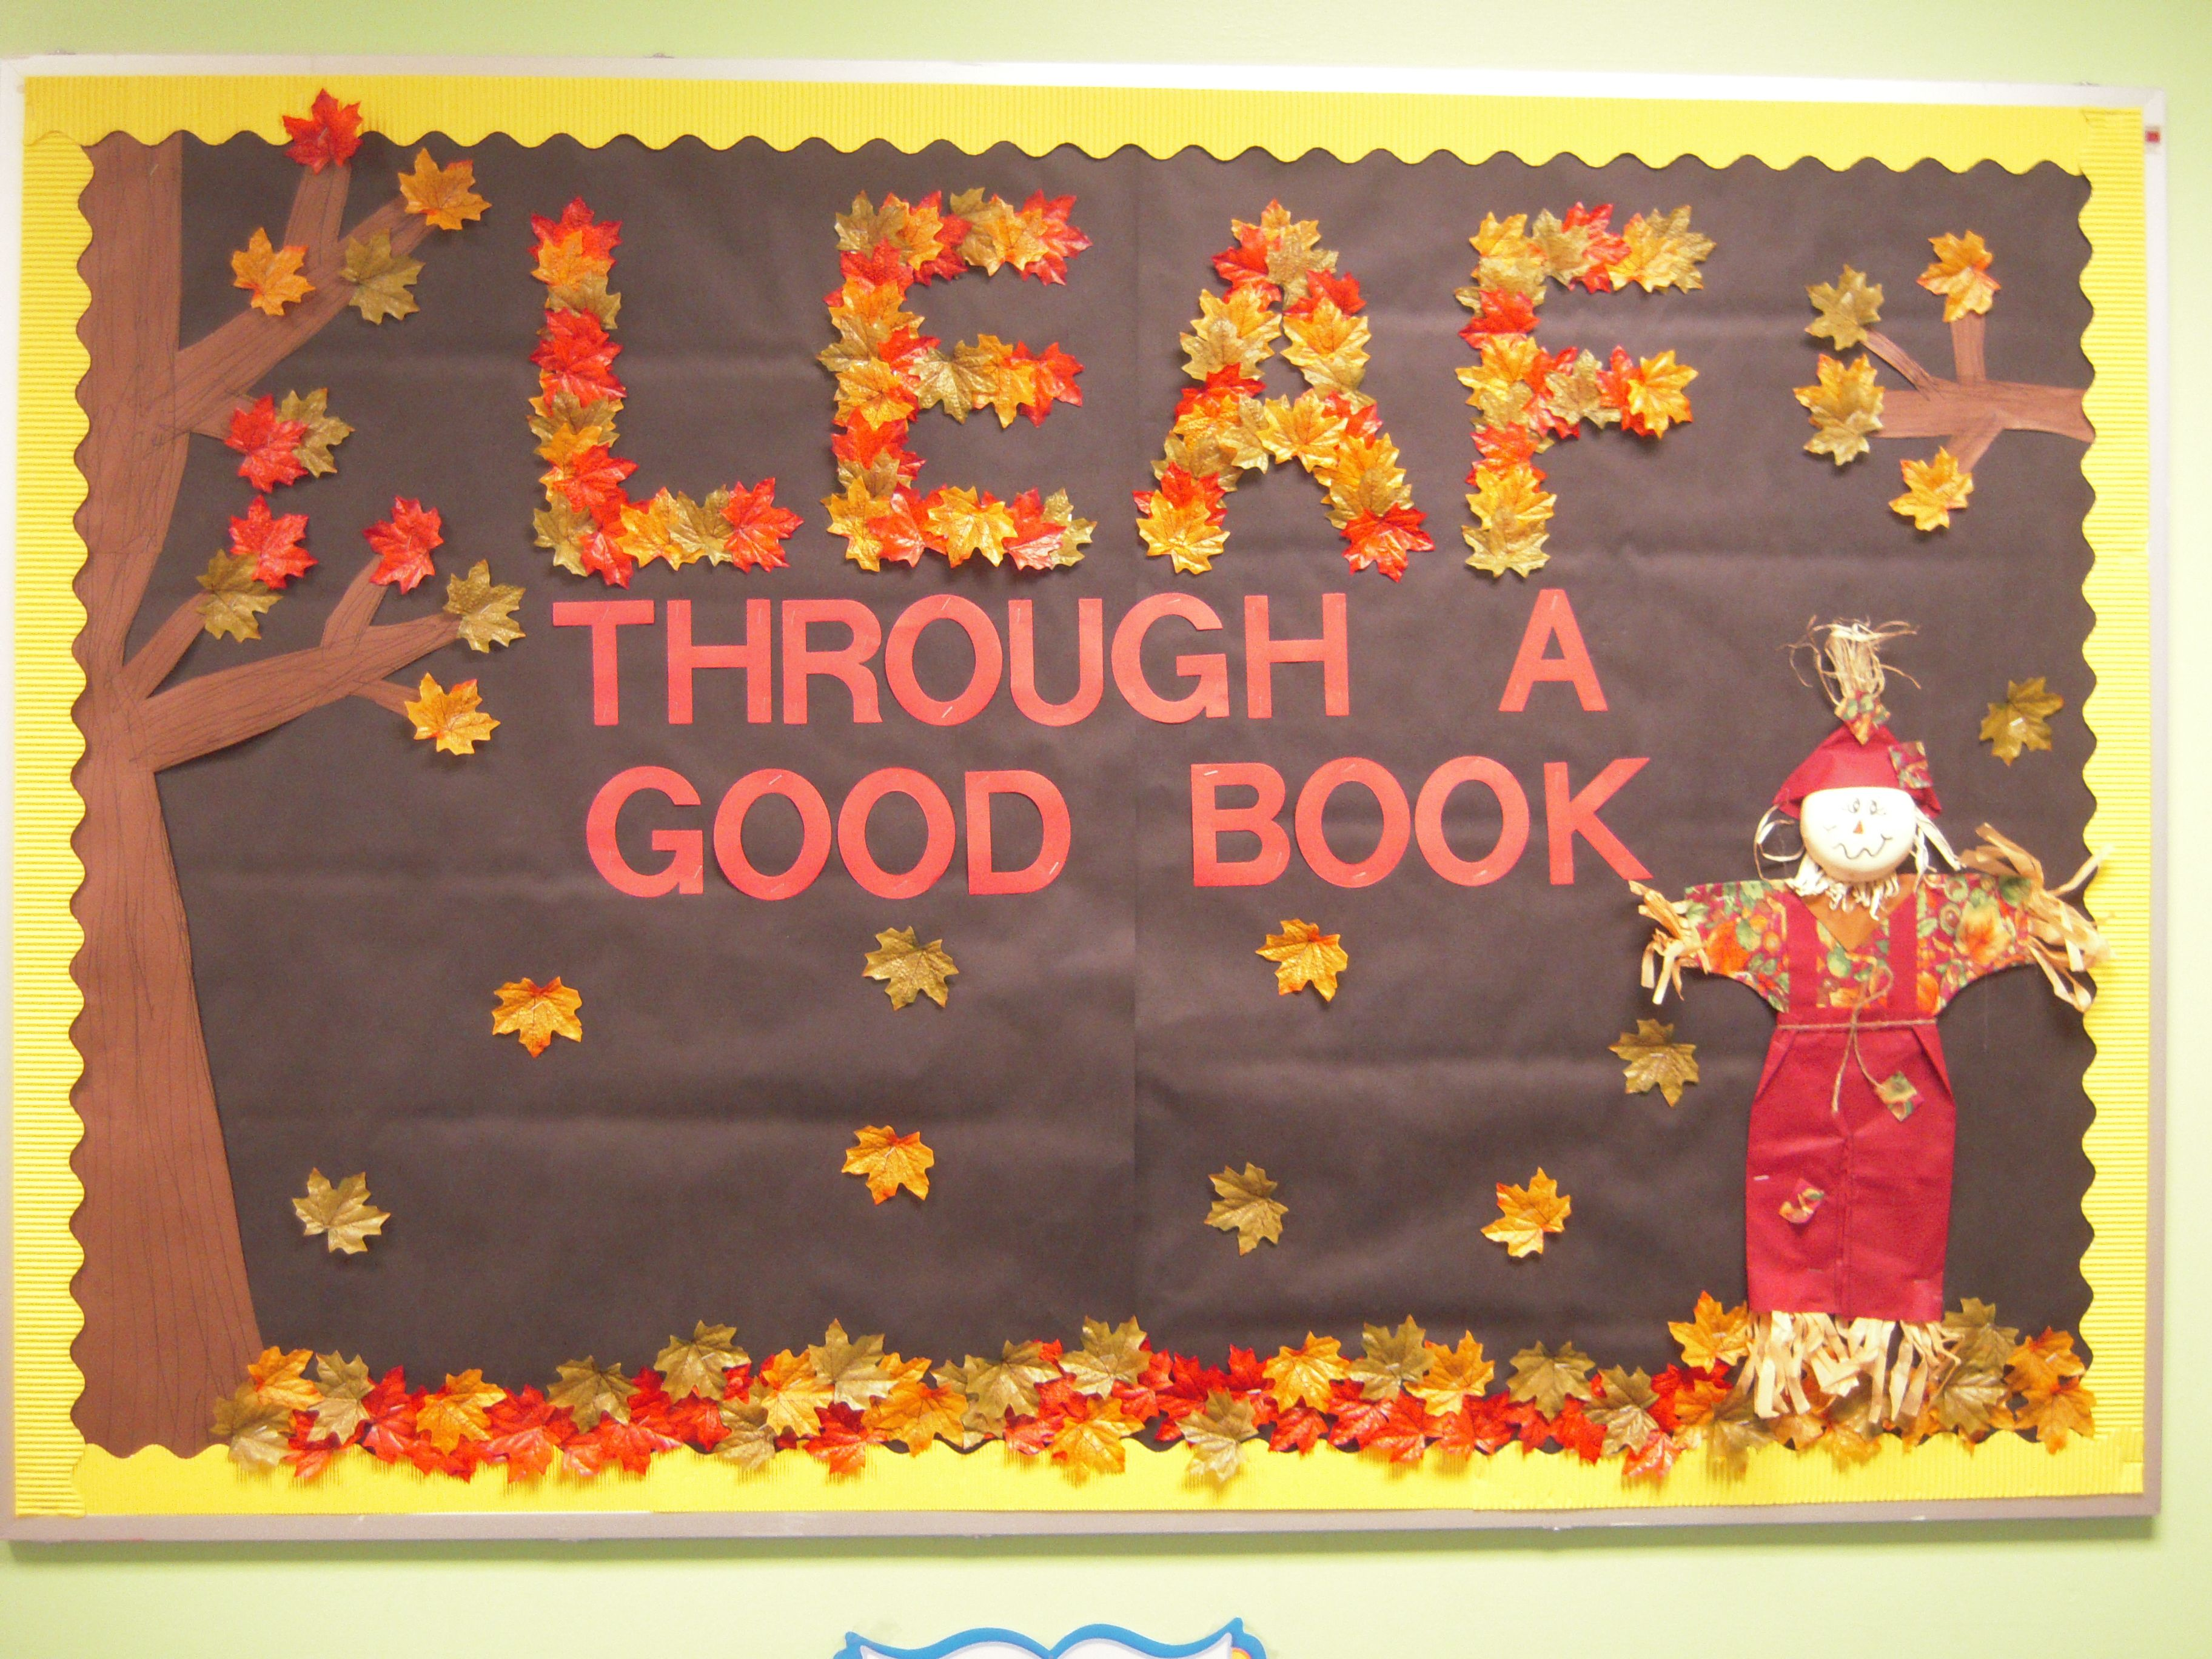 Winter bulletin boards ideas pinterest - Bulletin Board I Love How The Teacher Created The Letters Leaf Out Of Leaves This Is A Great Idea For A Fall Bulletin Board Display That Highlights